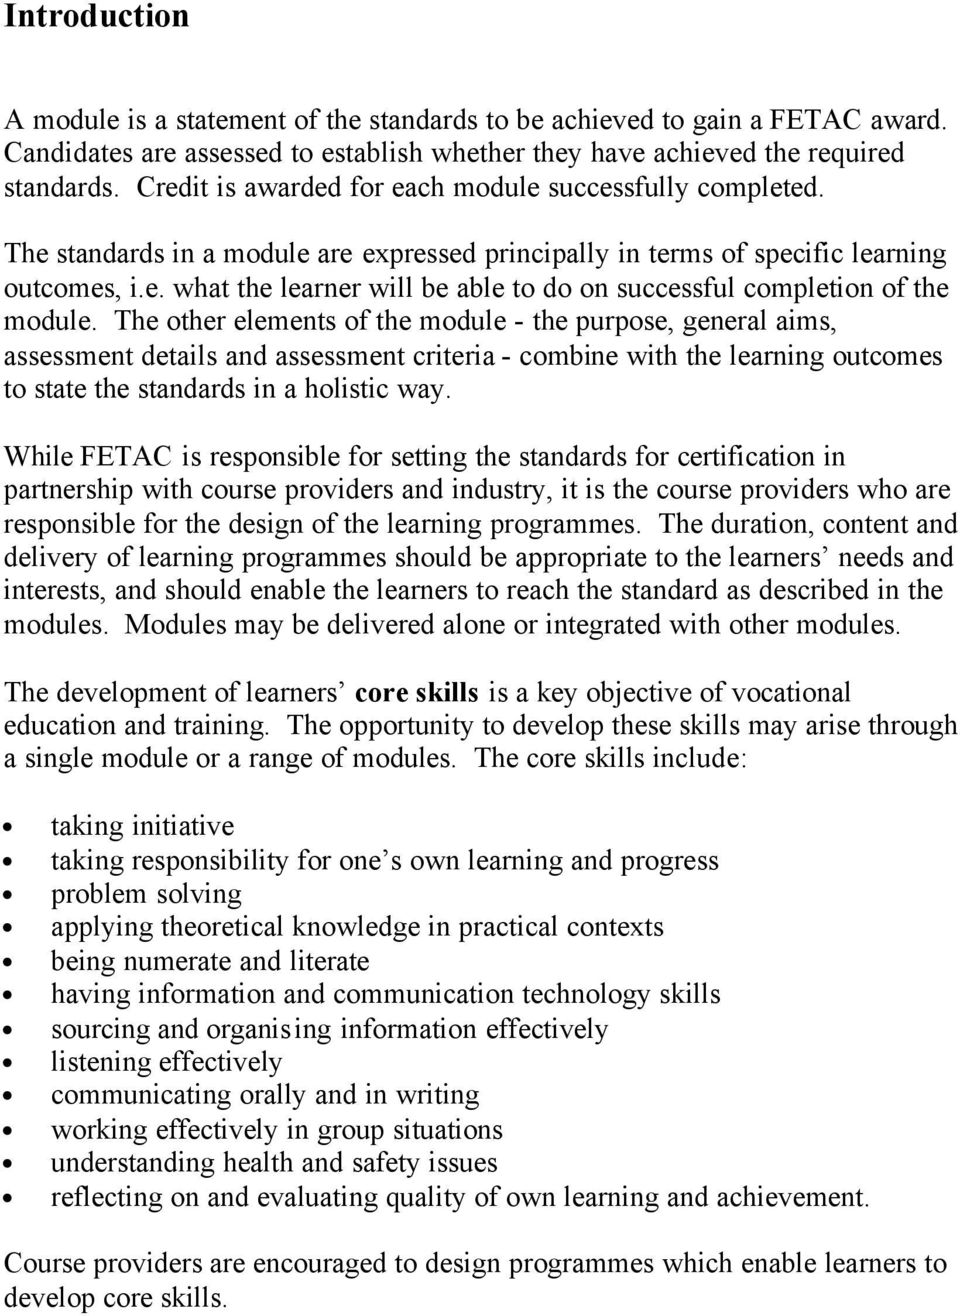 The other elements of the module - the purpose, general aims, assessment details and assessment criteria - combine with the learning outcomes to state the standards in a holistic way.